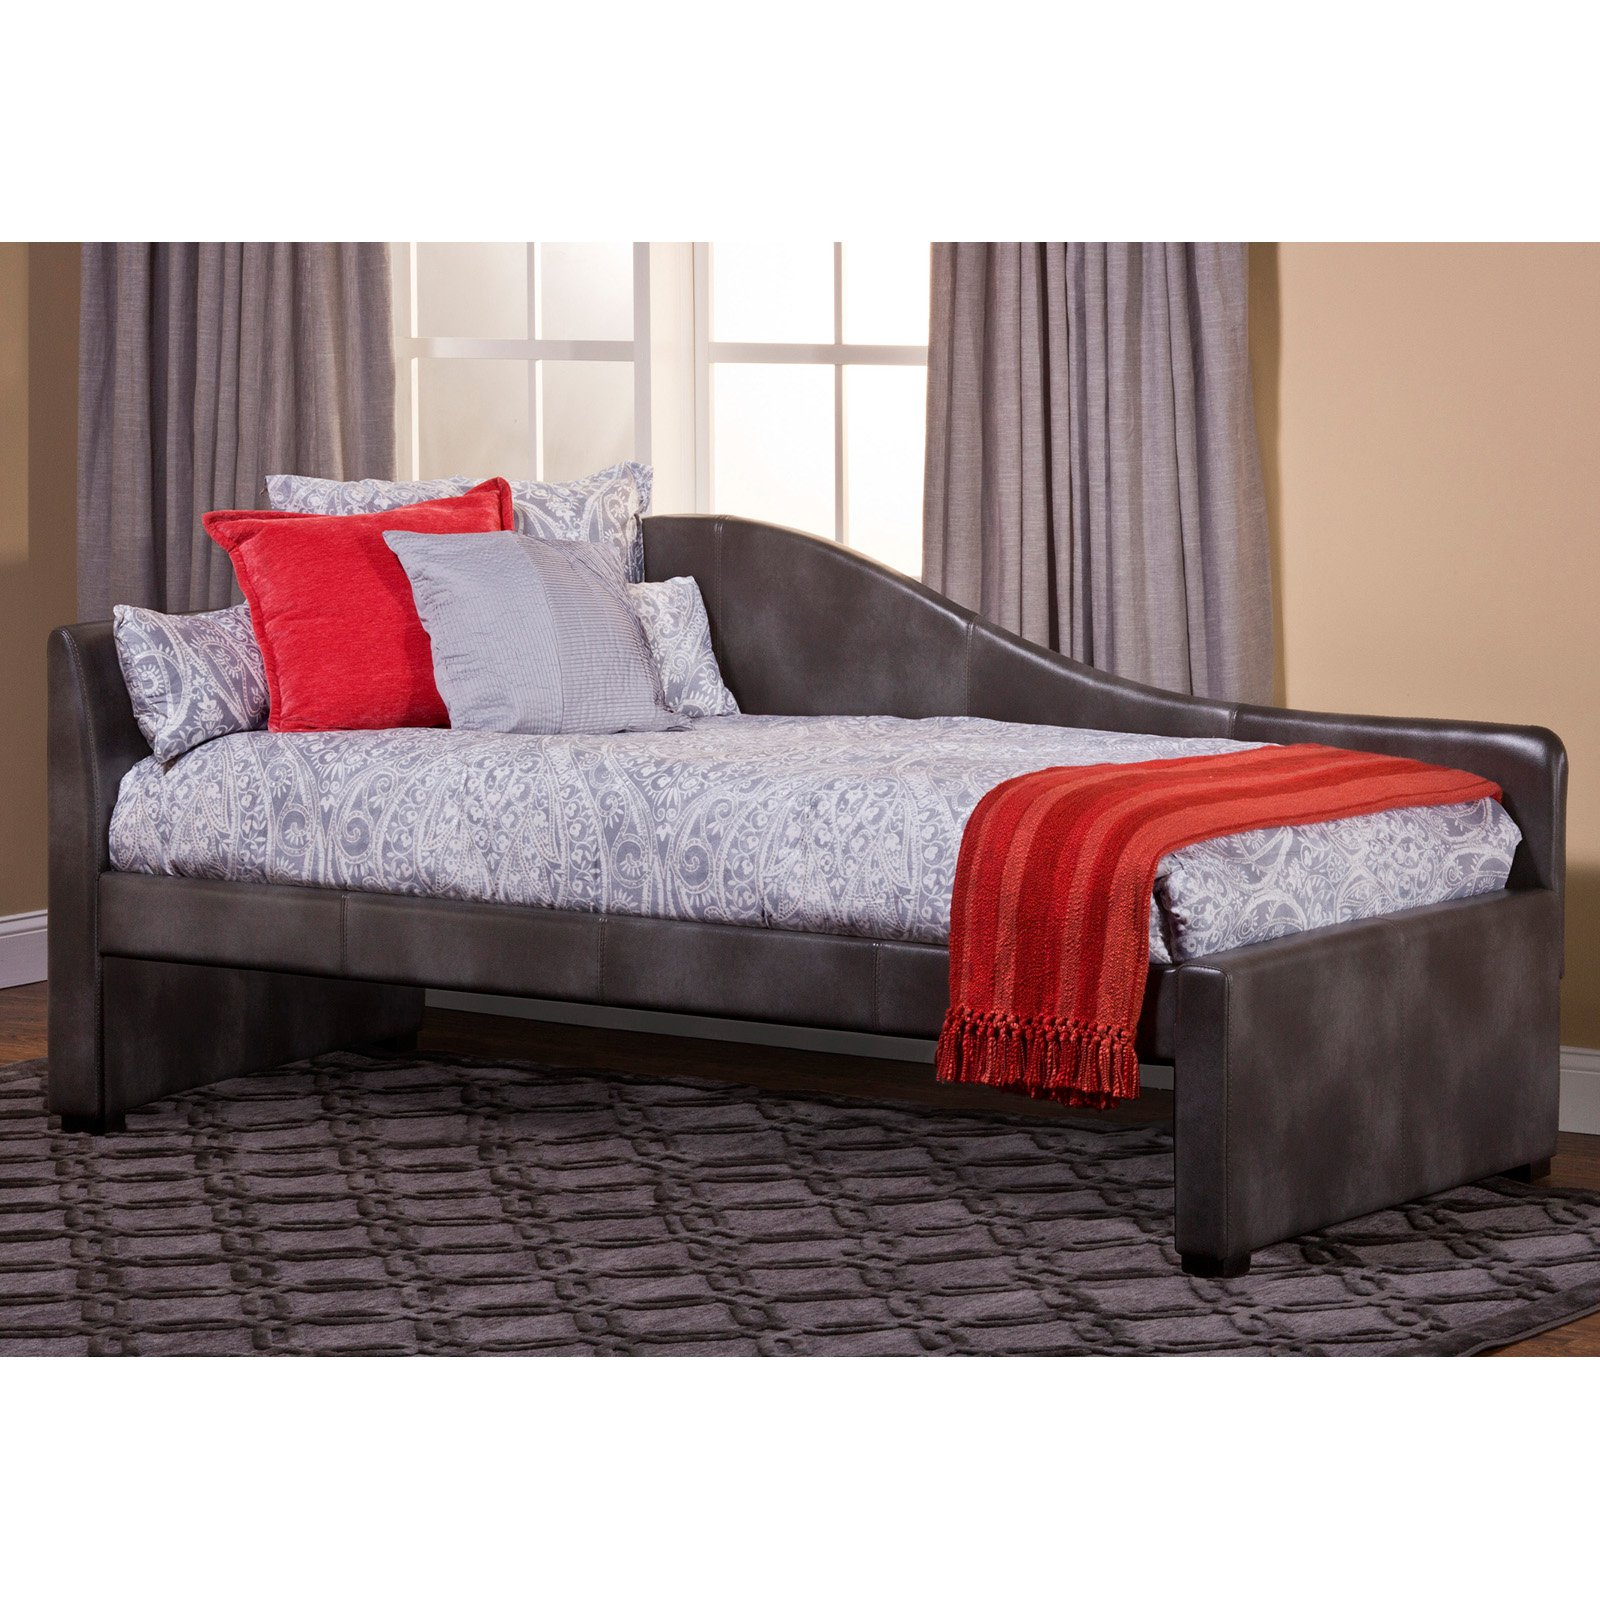 Hillsdale Winterberry Upholstered Day Bed by Hillsdale